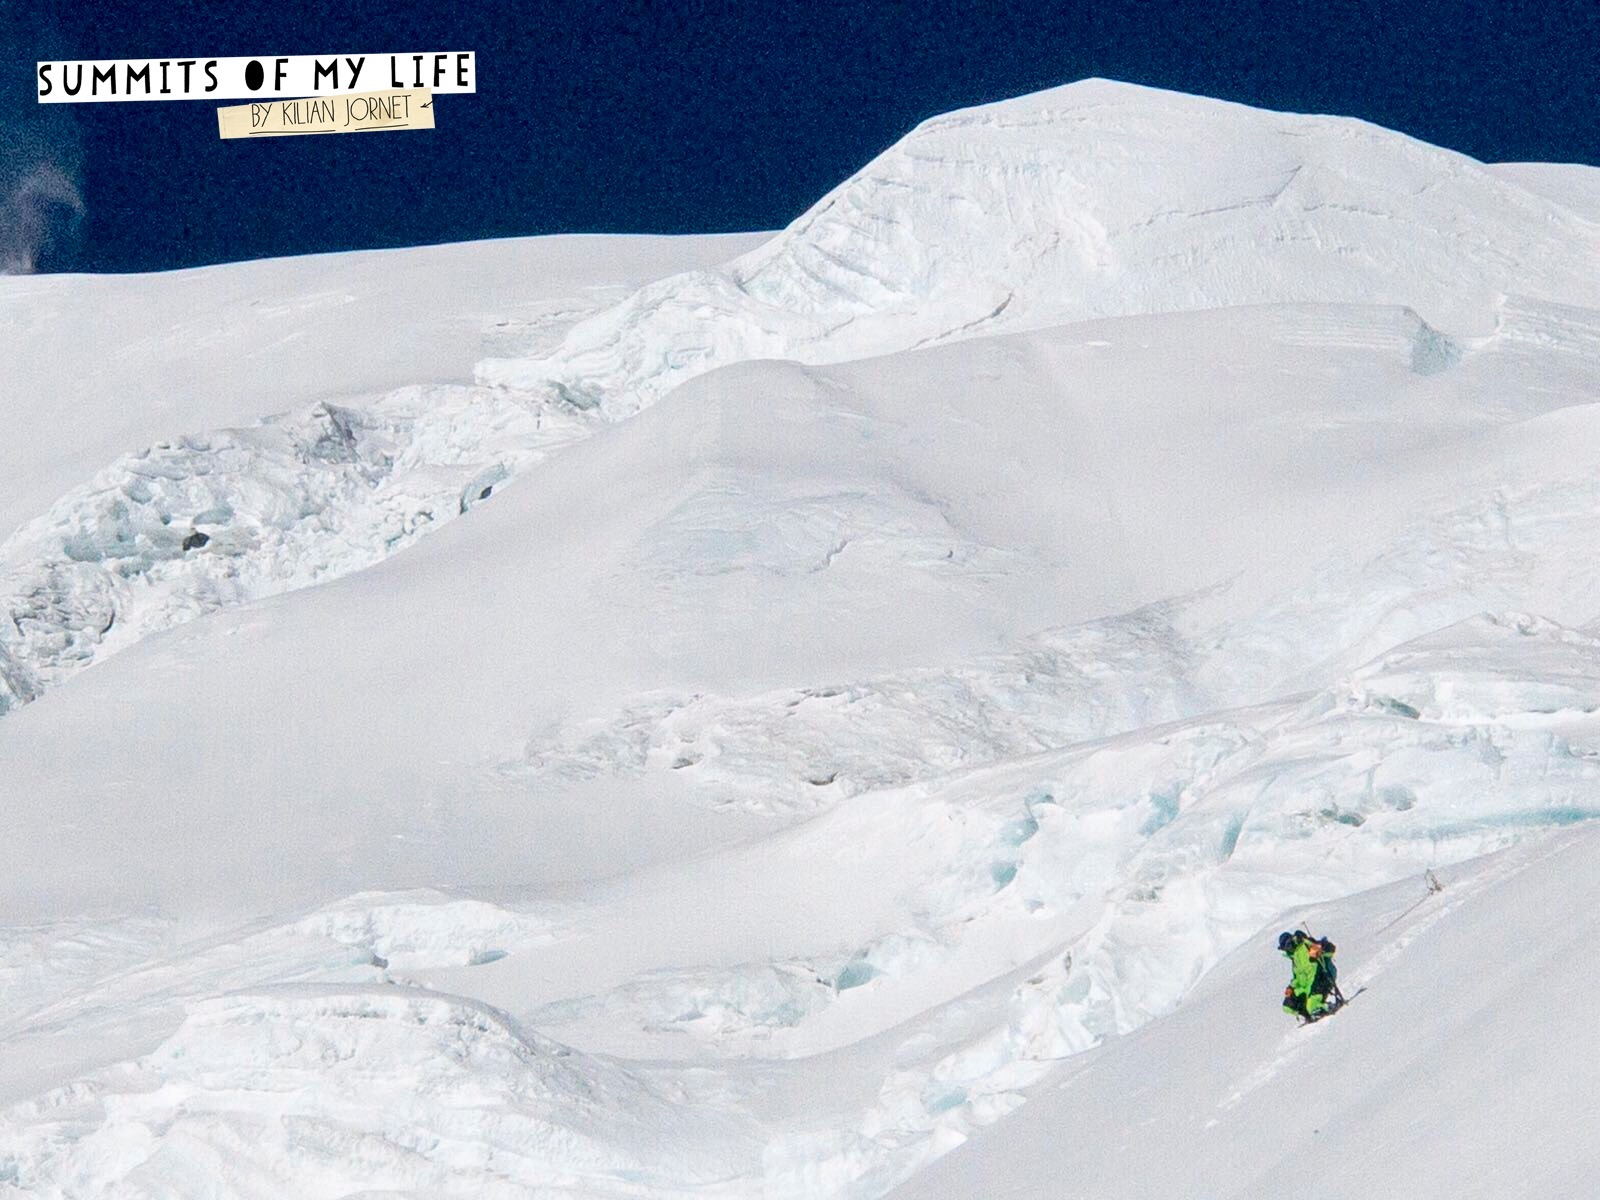 Jornet descends after summiting Everest's North Col route a second time on May 27. [Photo] Sebastien Montaz-Rosset/Kilian Jornet collection